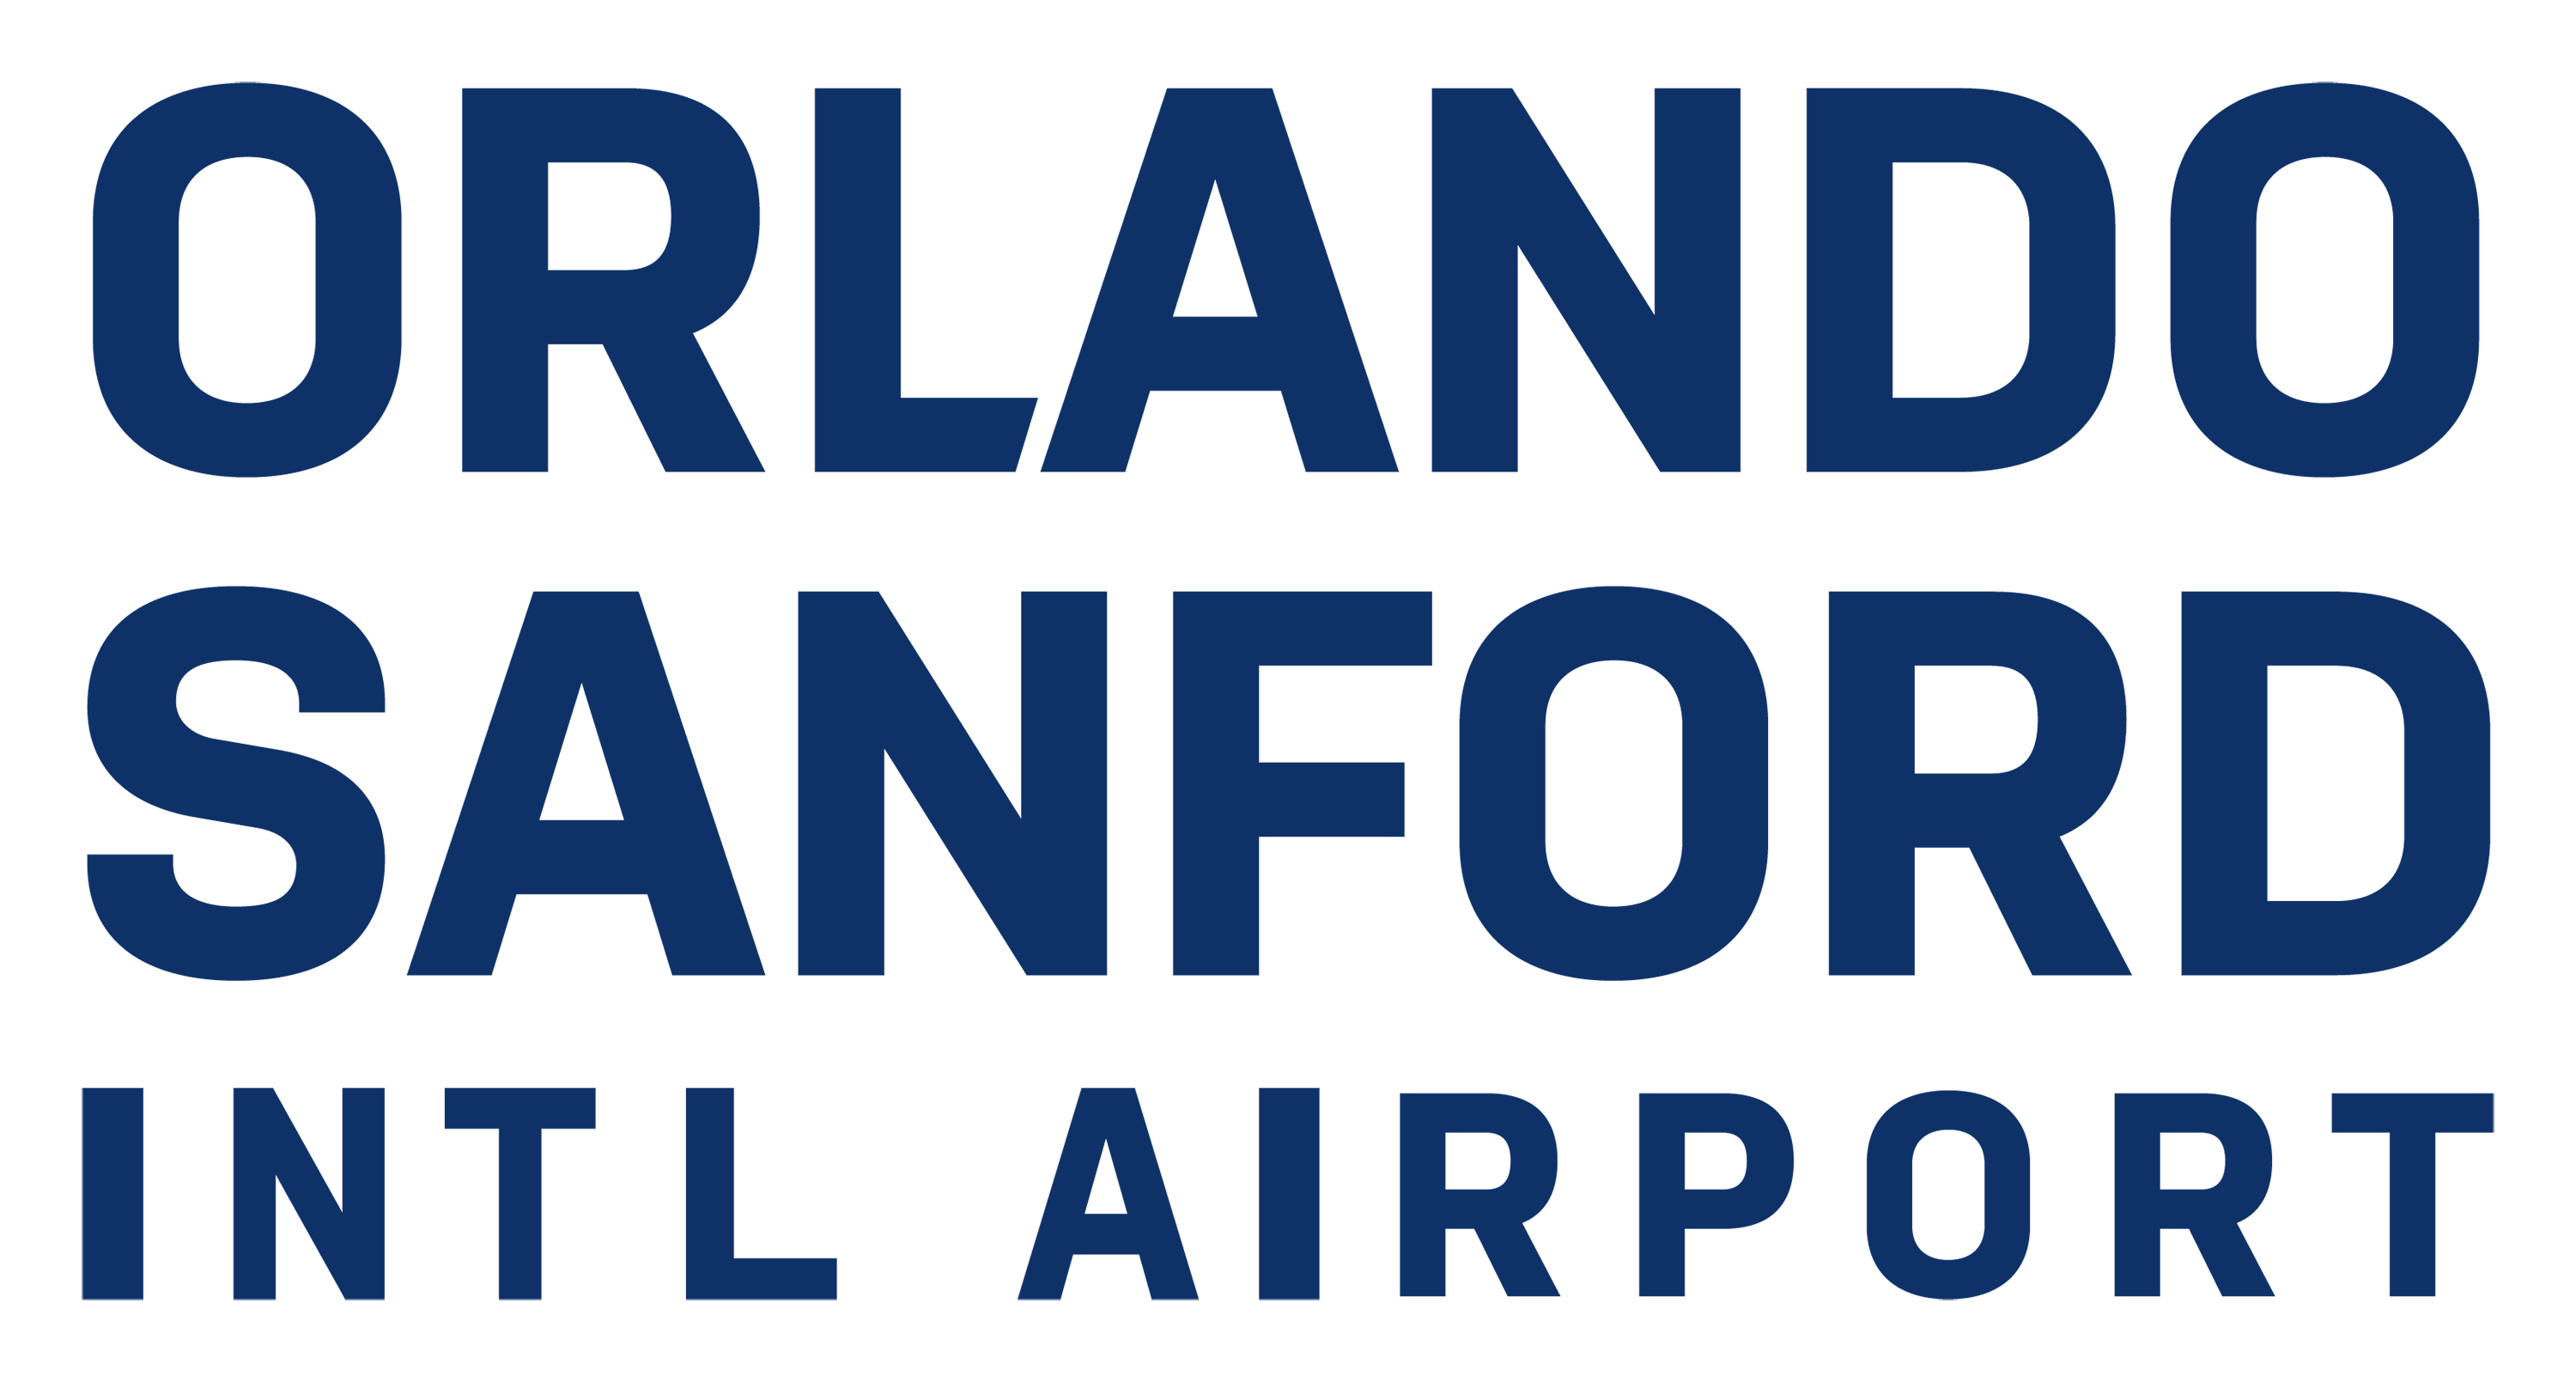 Fly Fast & Affordably | Orlando Sanford International Airport Sanford Map Of Ocala Florida on map of port of miami florida, map of the acreage florida, map of lakeland florida, map of south gulf cove florida, map of gainesville florida, map of ft. walton florida, map of lawtey florida, map of ruskin florida, full large map of florida, map of dover florida, map of everglades florida, map of orange springs florida, map of coconut grove florida, map of tampa florida, map of saint lucie florida, map of indian creek florida, map of davie florida, map of micco florida, map of orlando florida, map of chokoloskee florida,